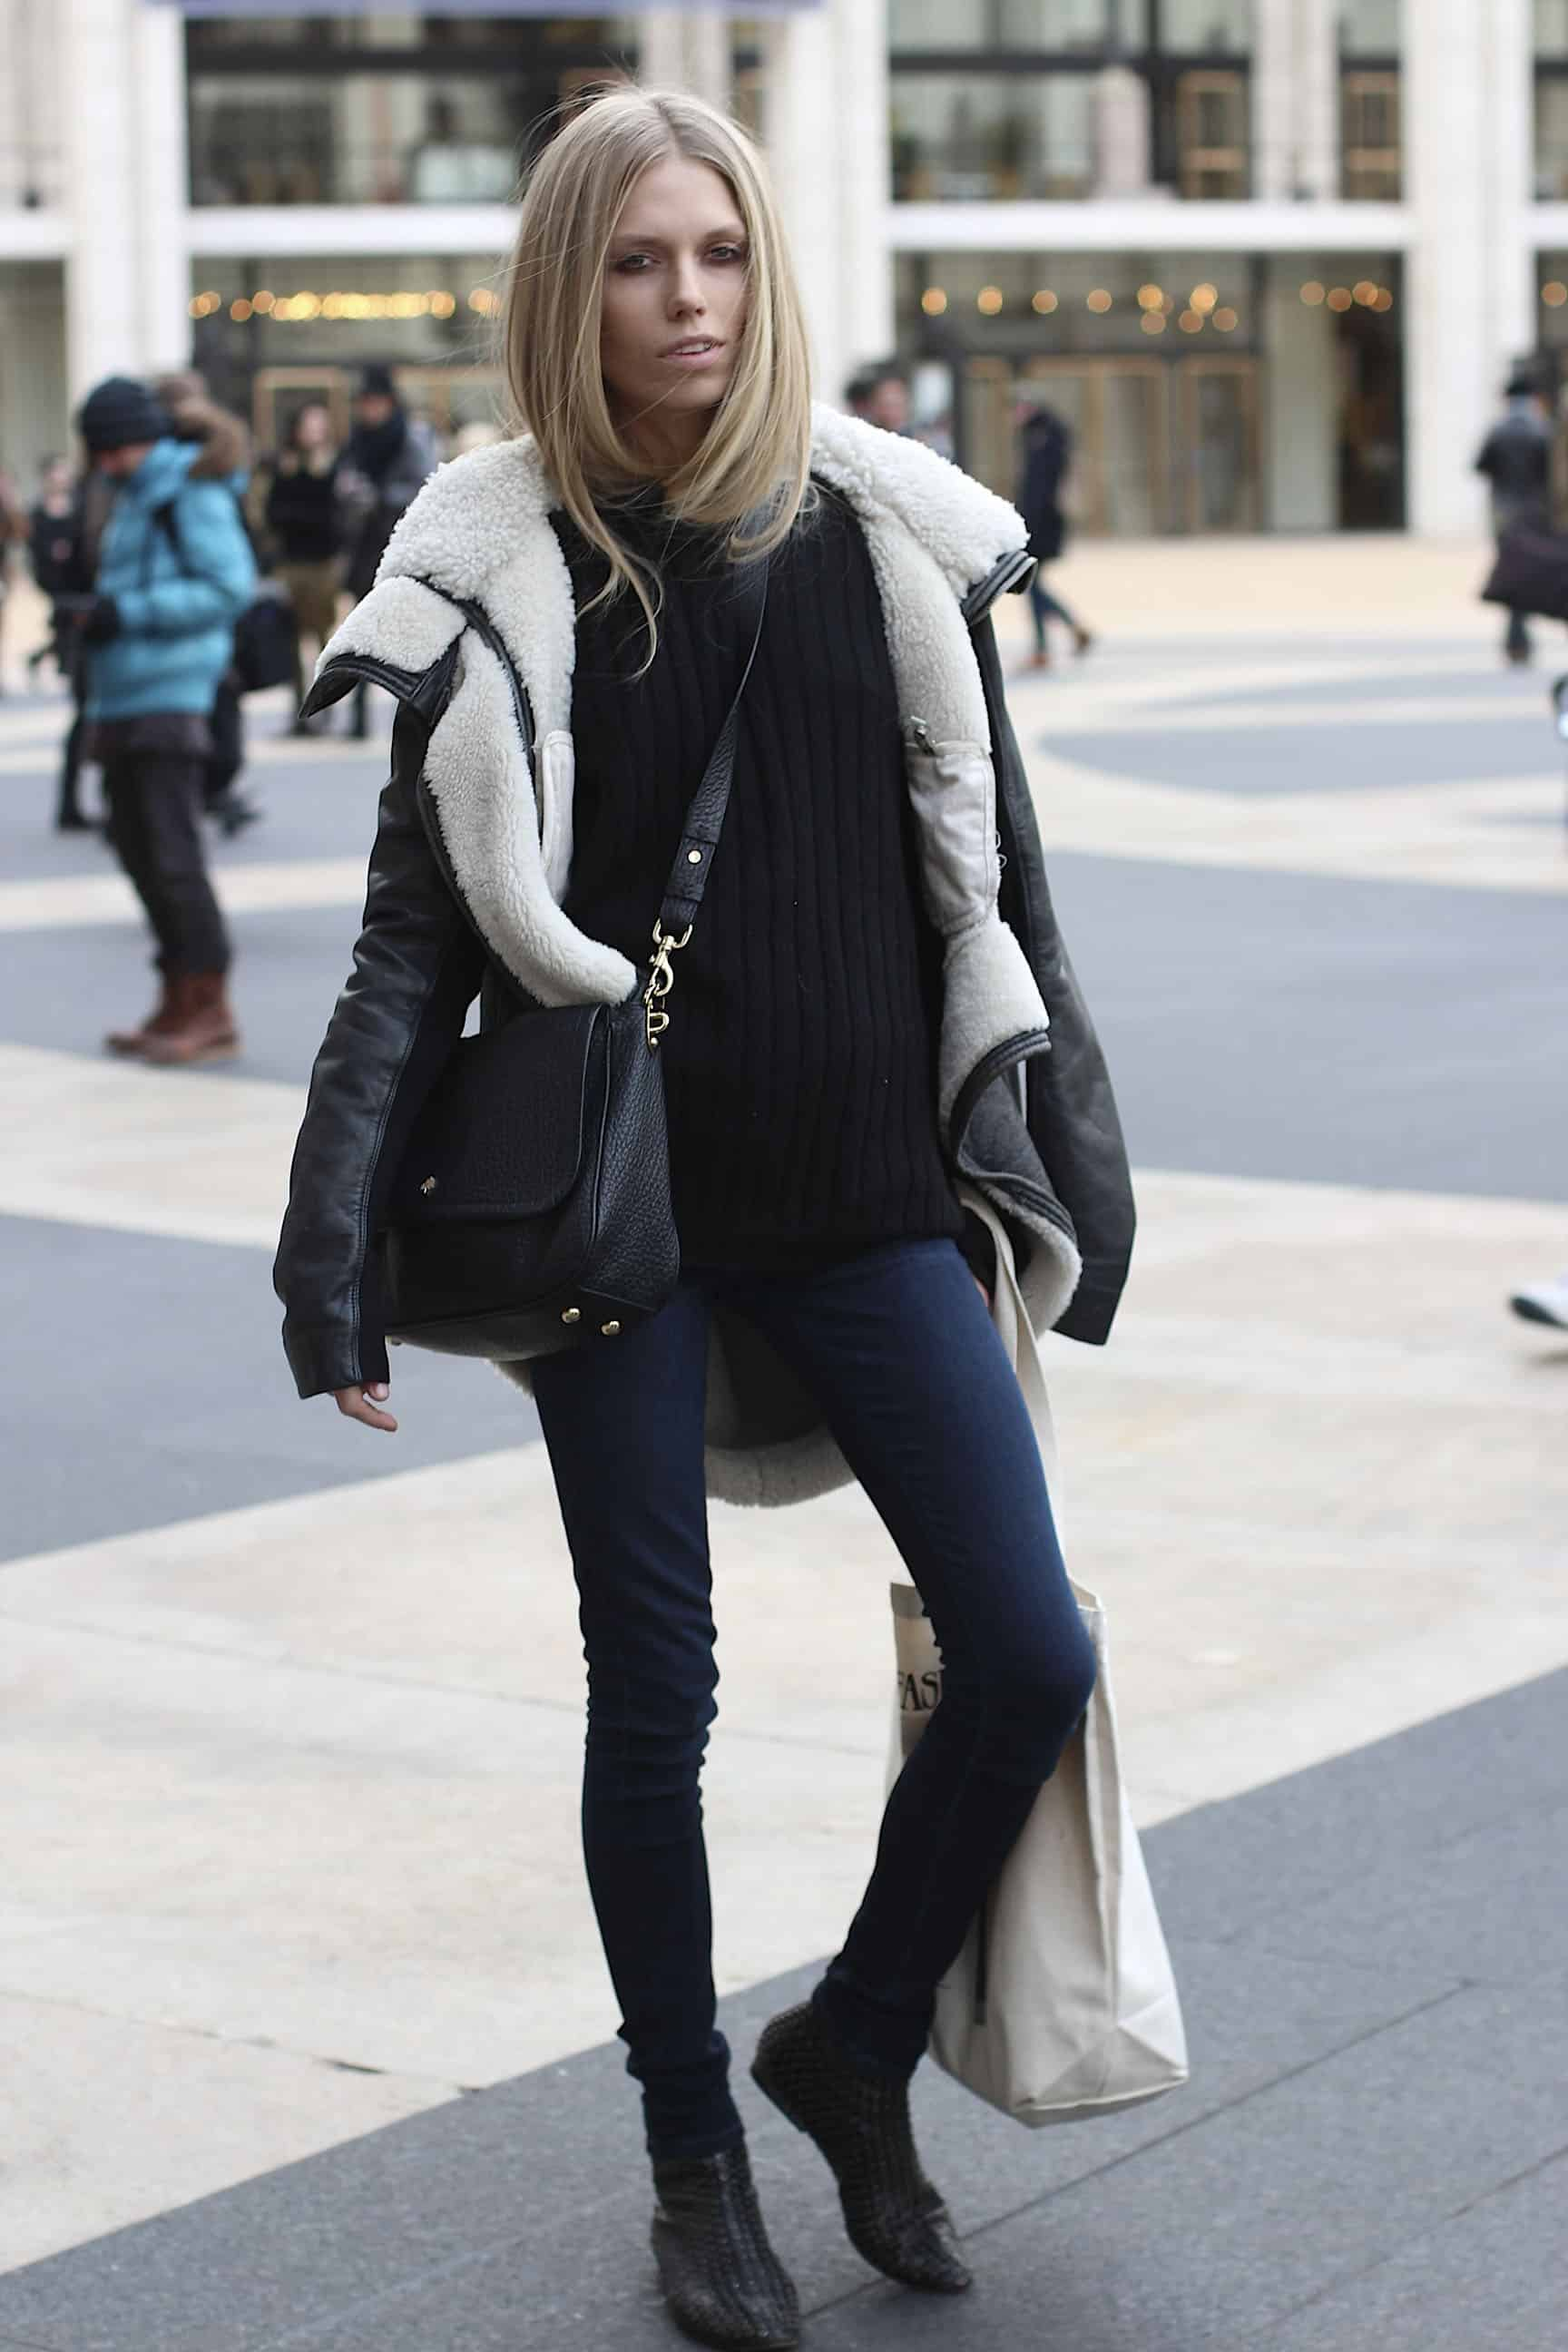 grungy-look-skinny-jeans-street-style